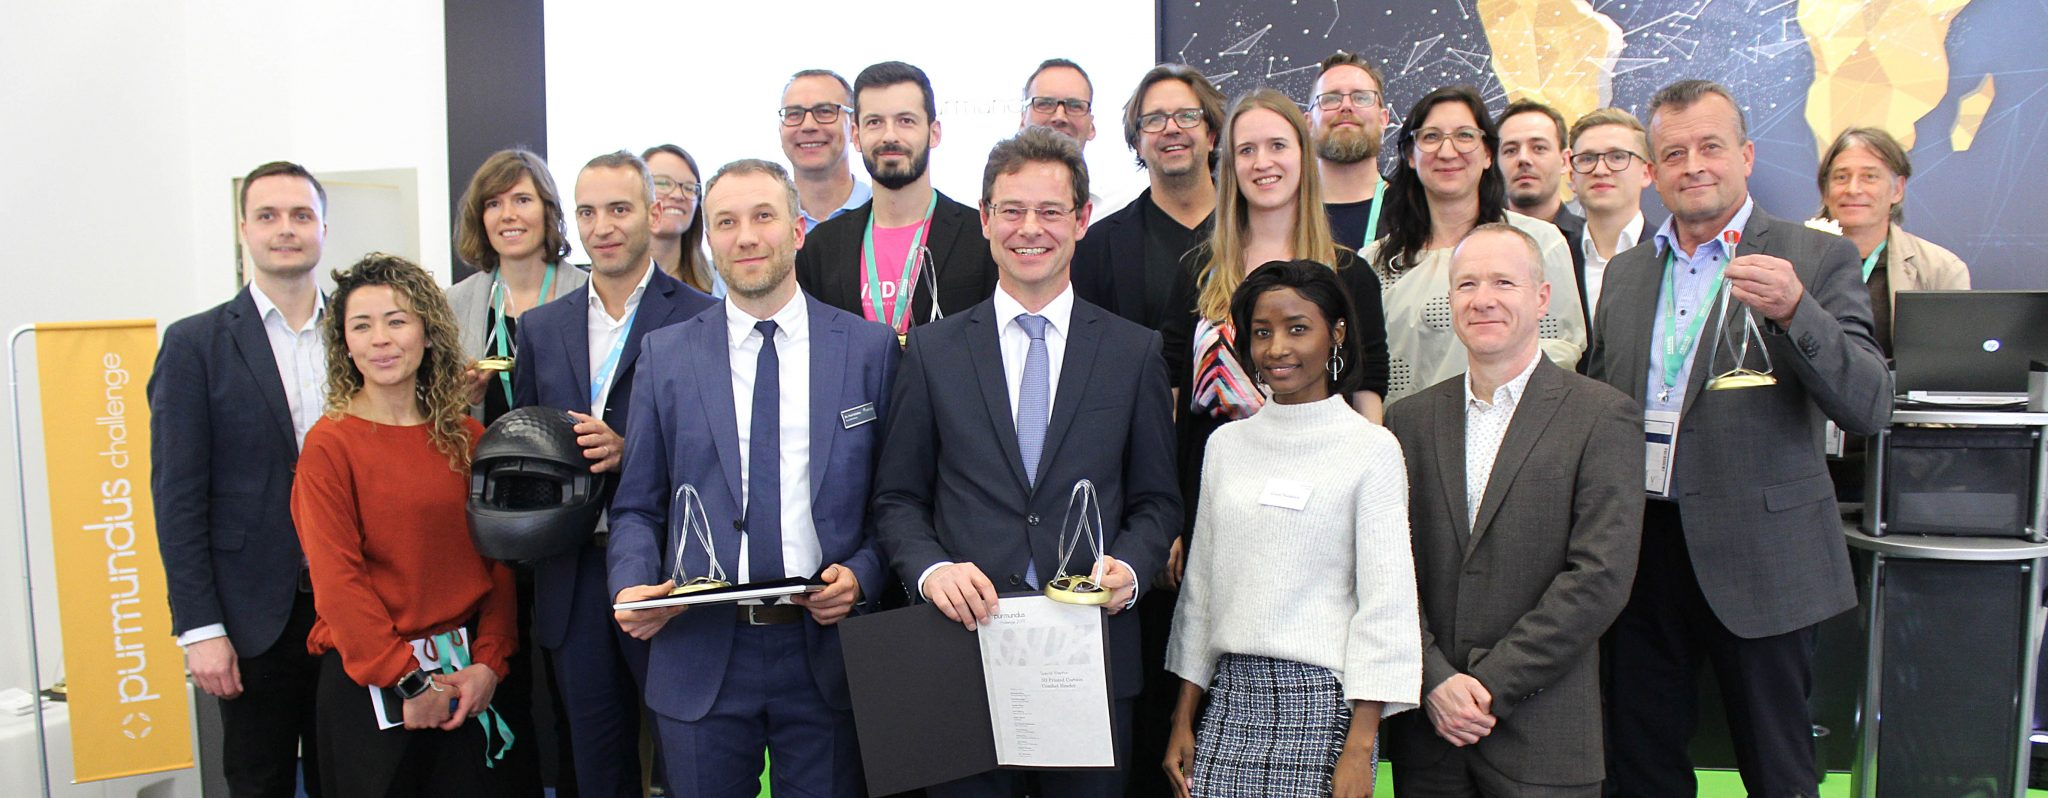 The 2019 purmundus challenge winners. Photo via purmundus challenge.